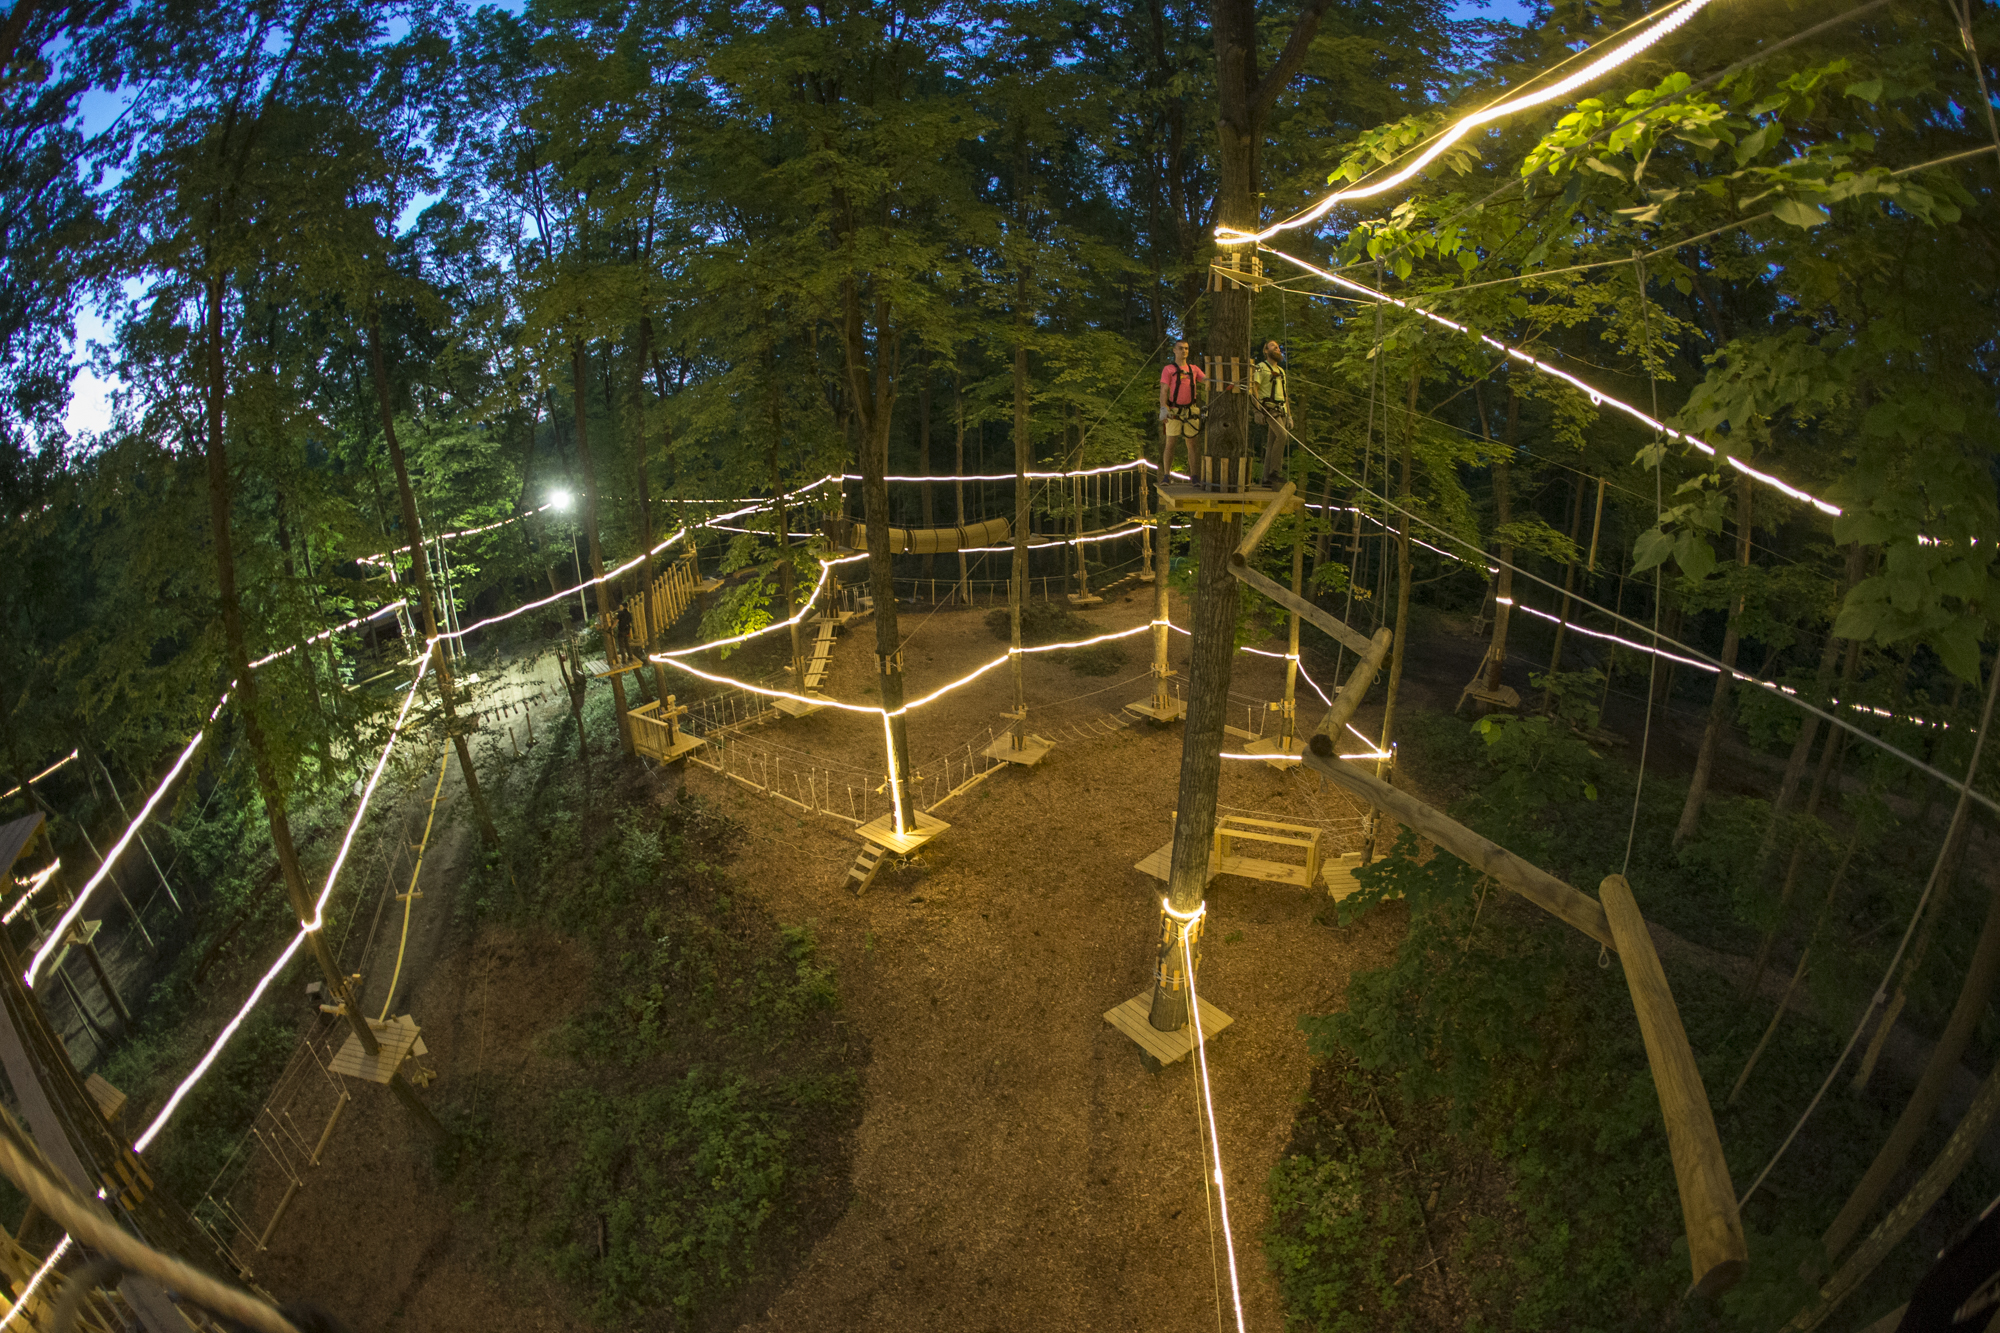 Night Climbs Treescape Aerial Adventure Park